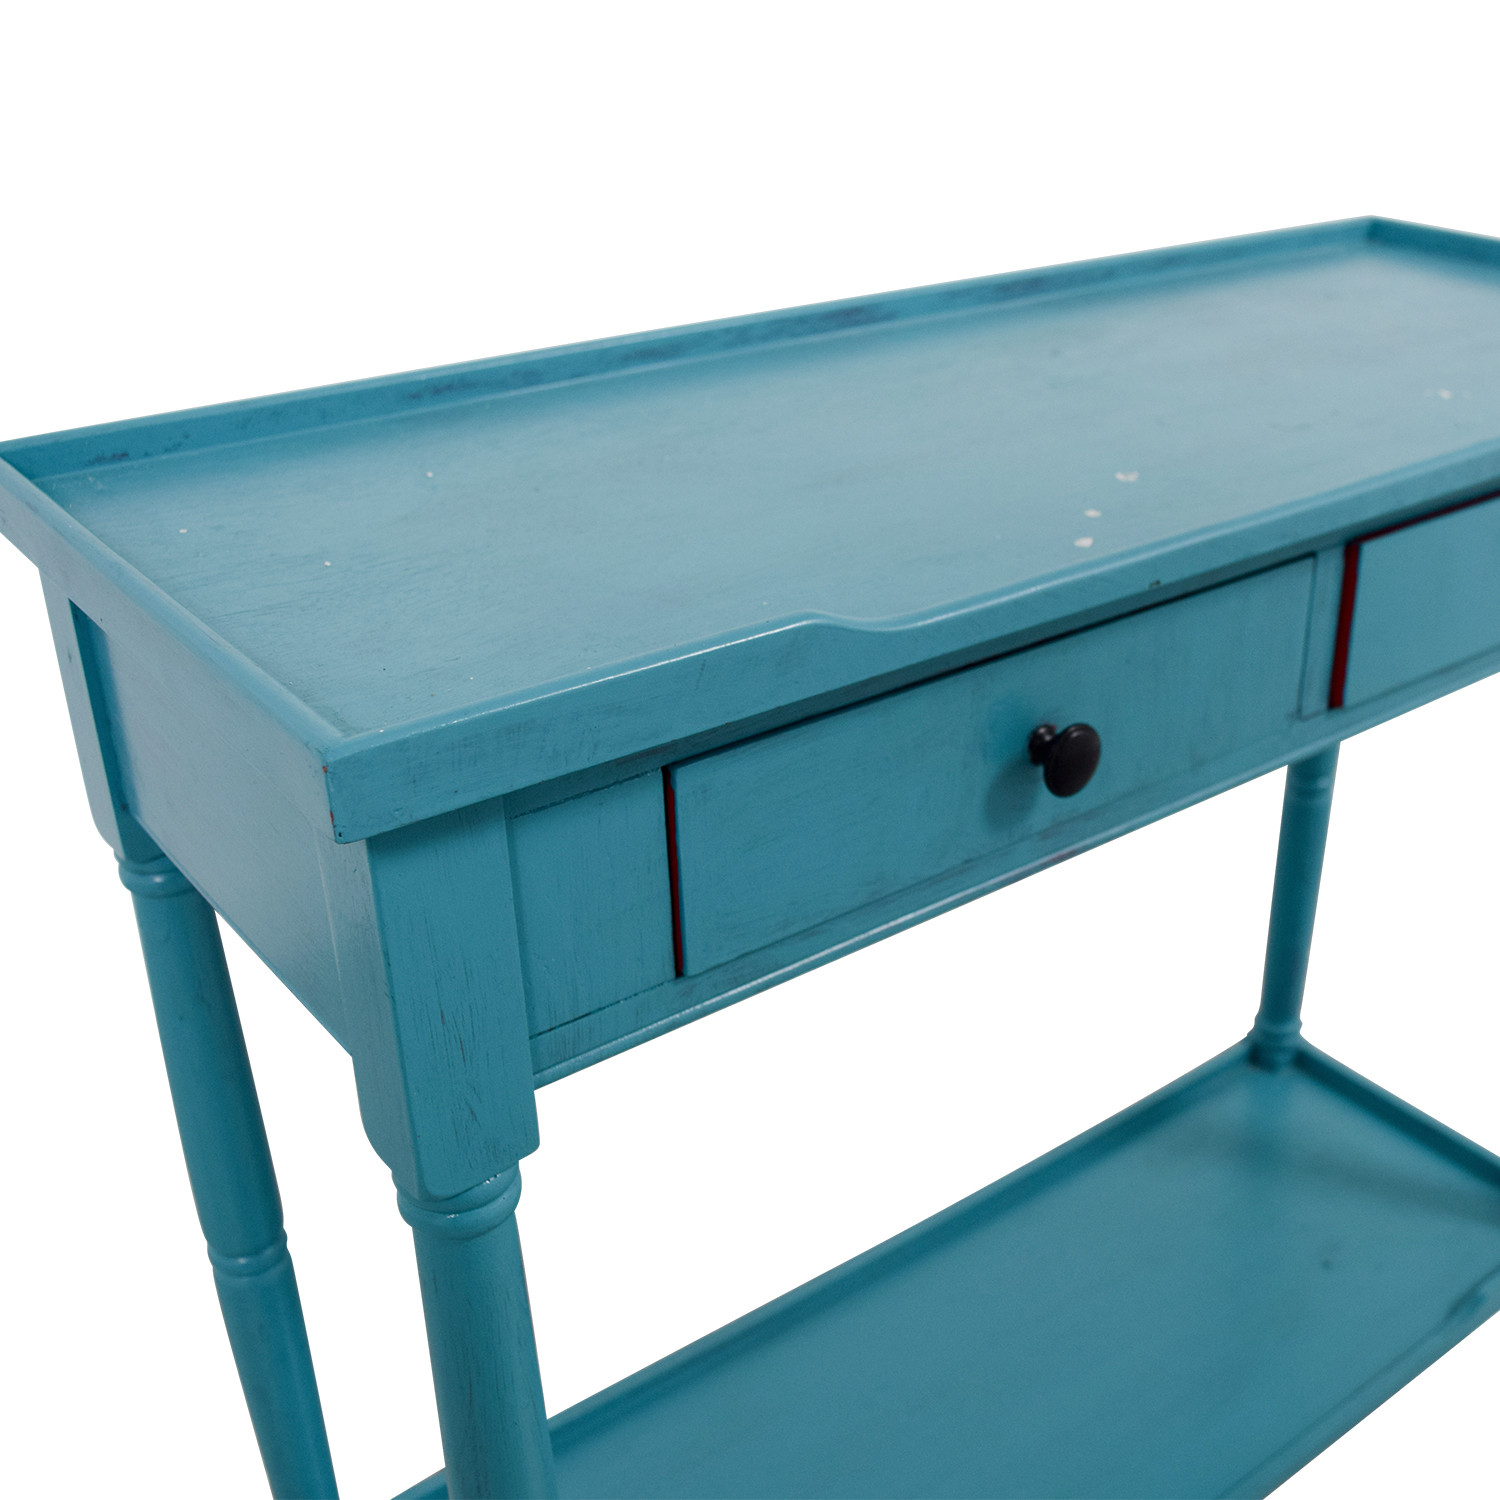 Best ideas about Teal Entryway Table . Save or Pin OFF HomeGoods HomeGoods Teal Entryway Table Tables Now.